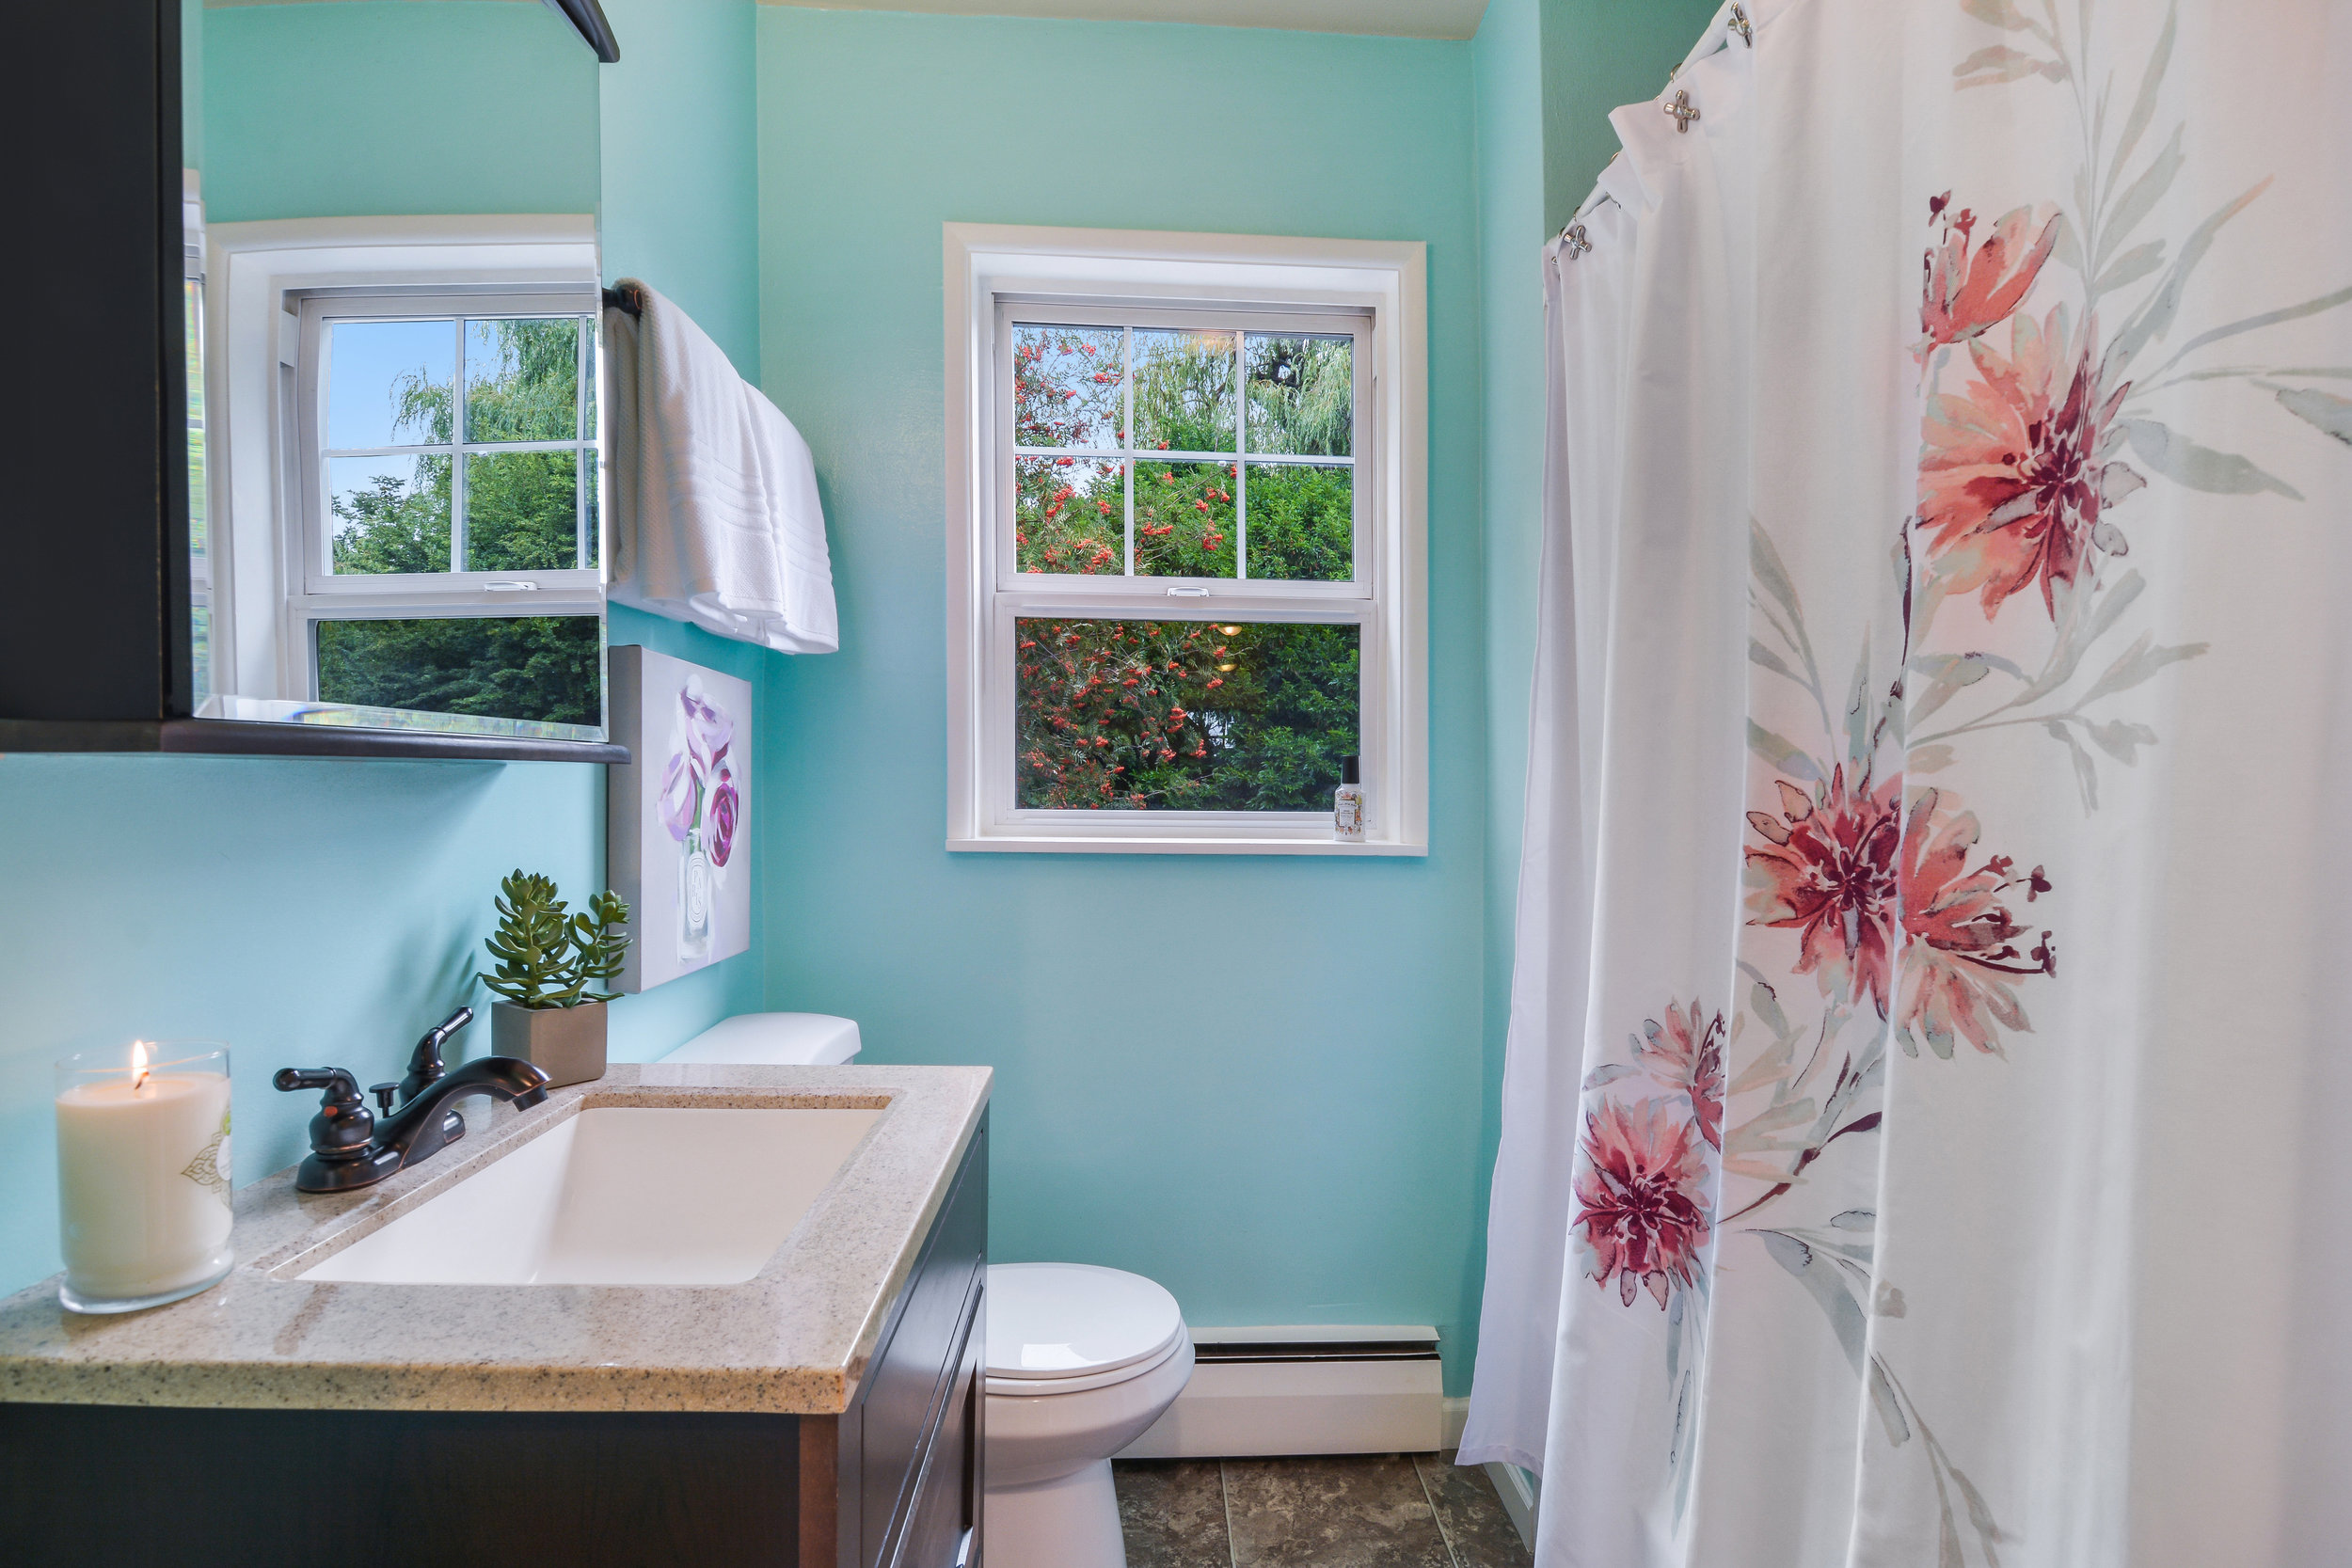 This full bath is located in the hall between the 2 main floor bedrooms. With a clean, white tub surround, contrasting hardware, and a view to the Mountain Ash tree in the backyard, this is a very pleasant and practical bathroom.